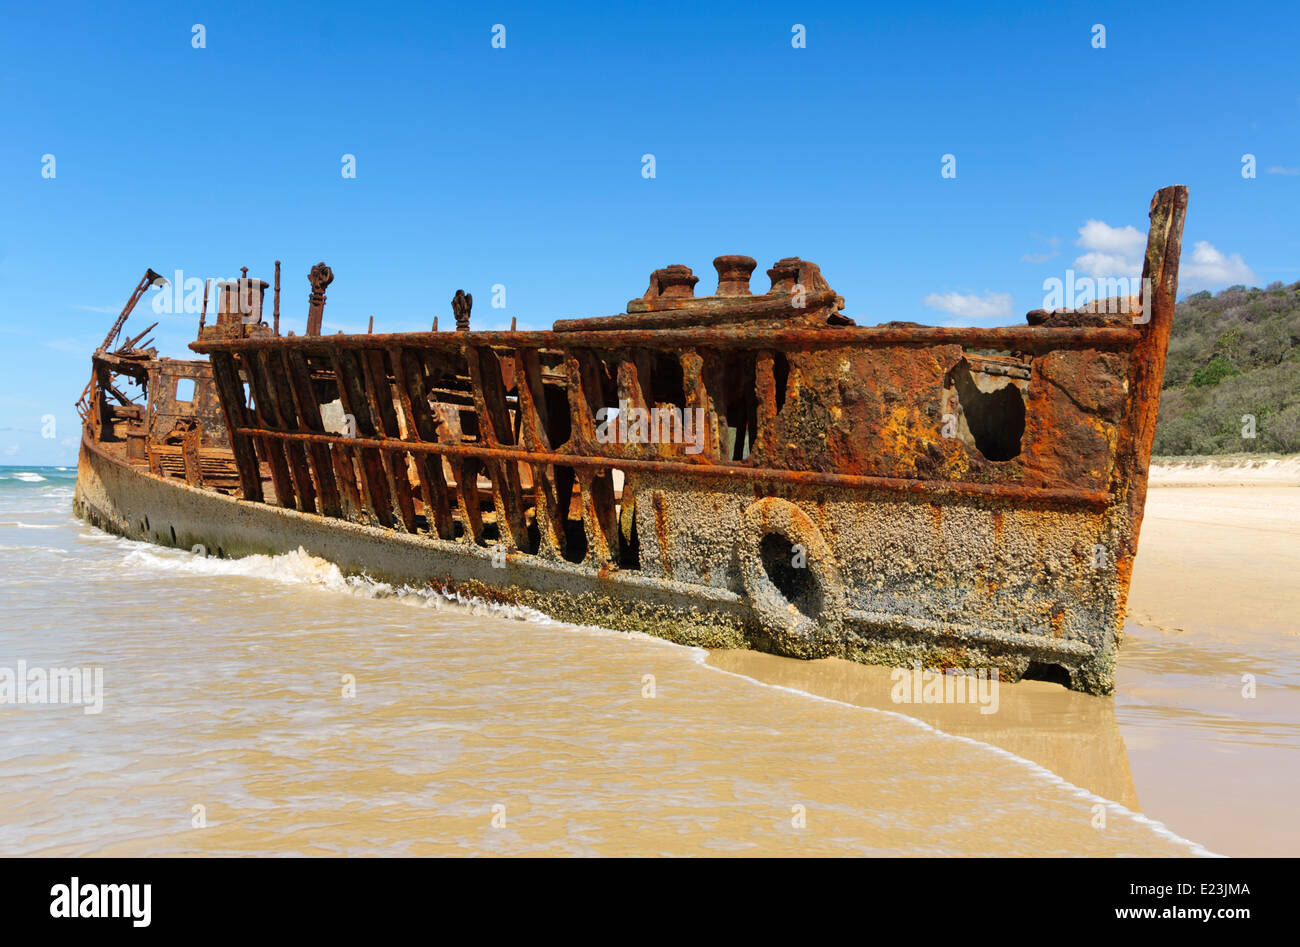 the-maheno-shipwreck-which-was-washed-as